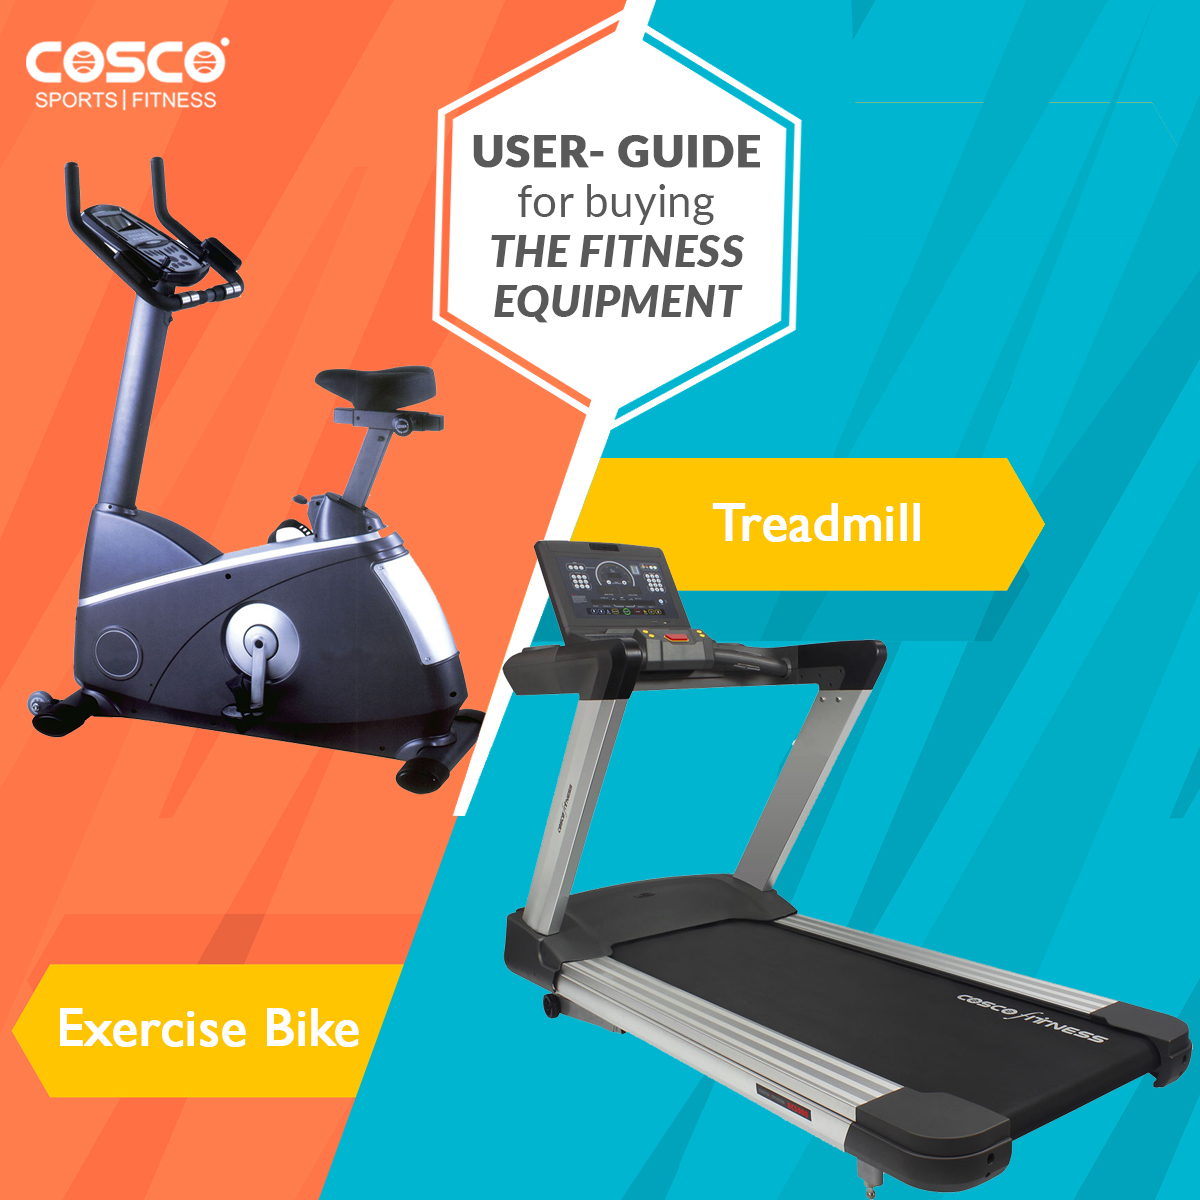 Fitness Equipment Industry Statistics: User Guide For Buying The Fitness Equipment